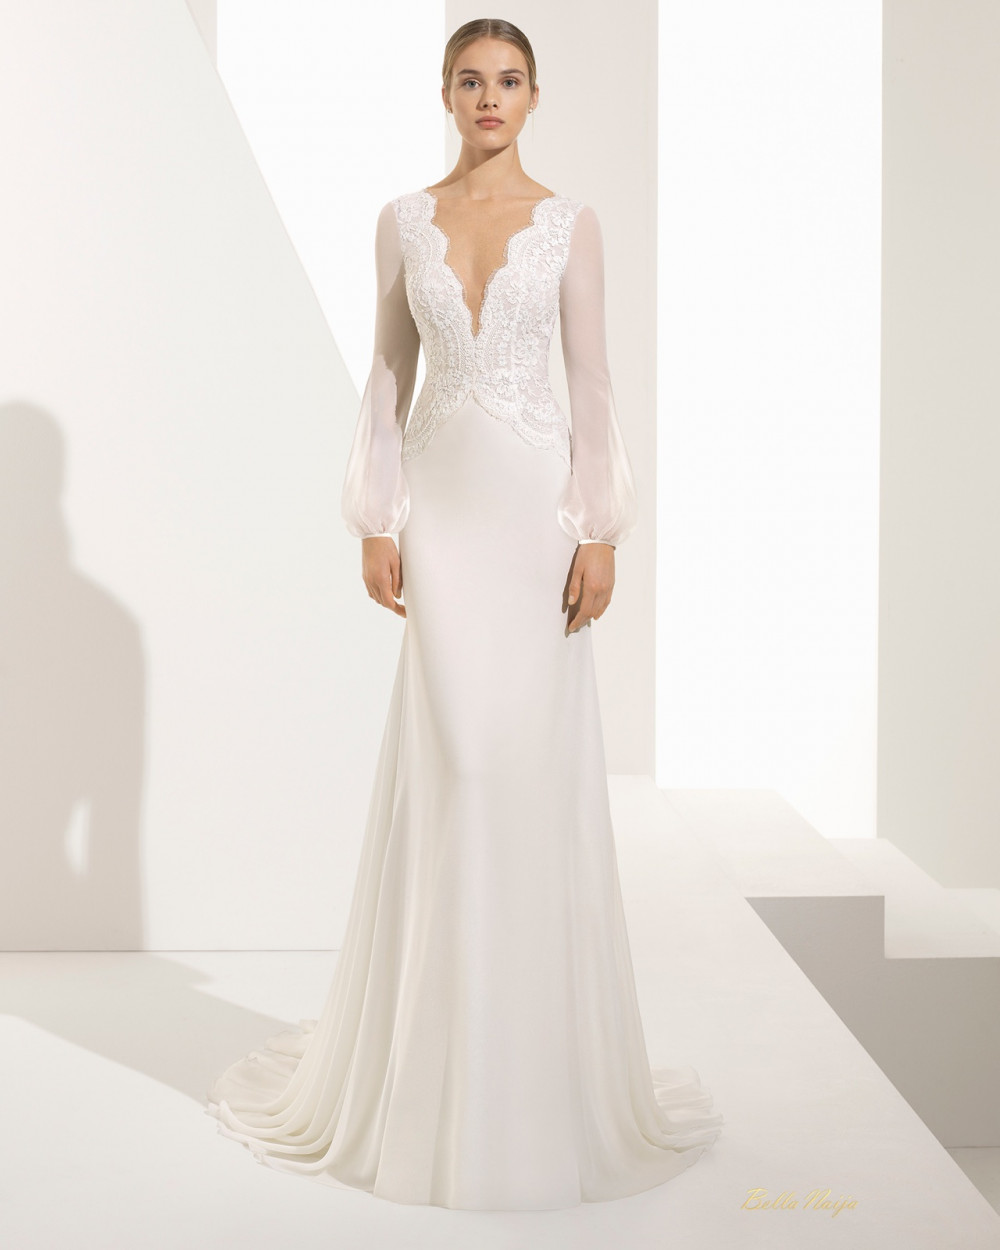 BN Bridal: Rosa Clará's Collection Is Sheer Elegance